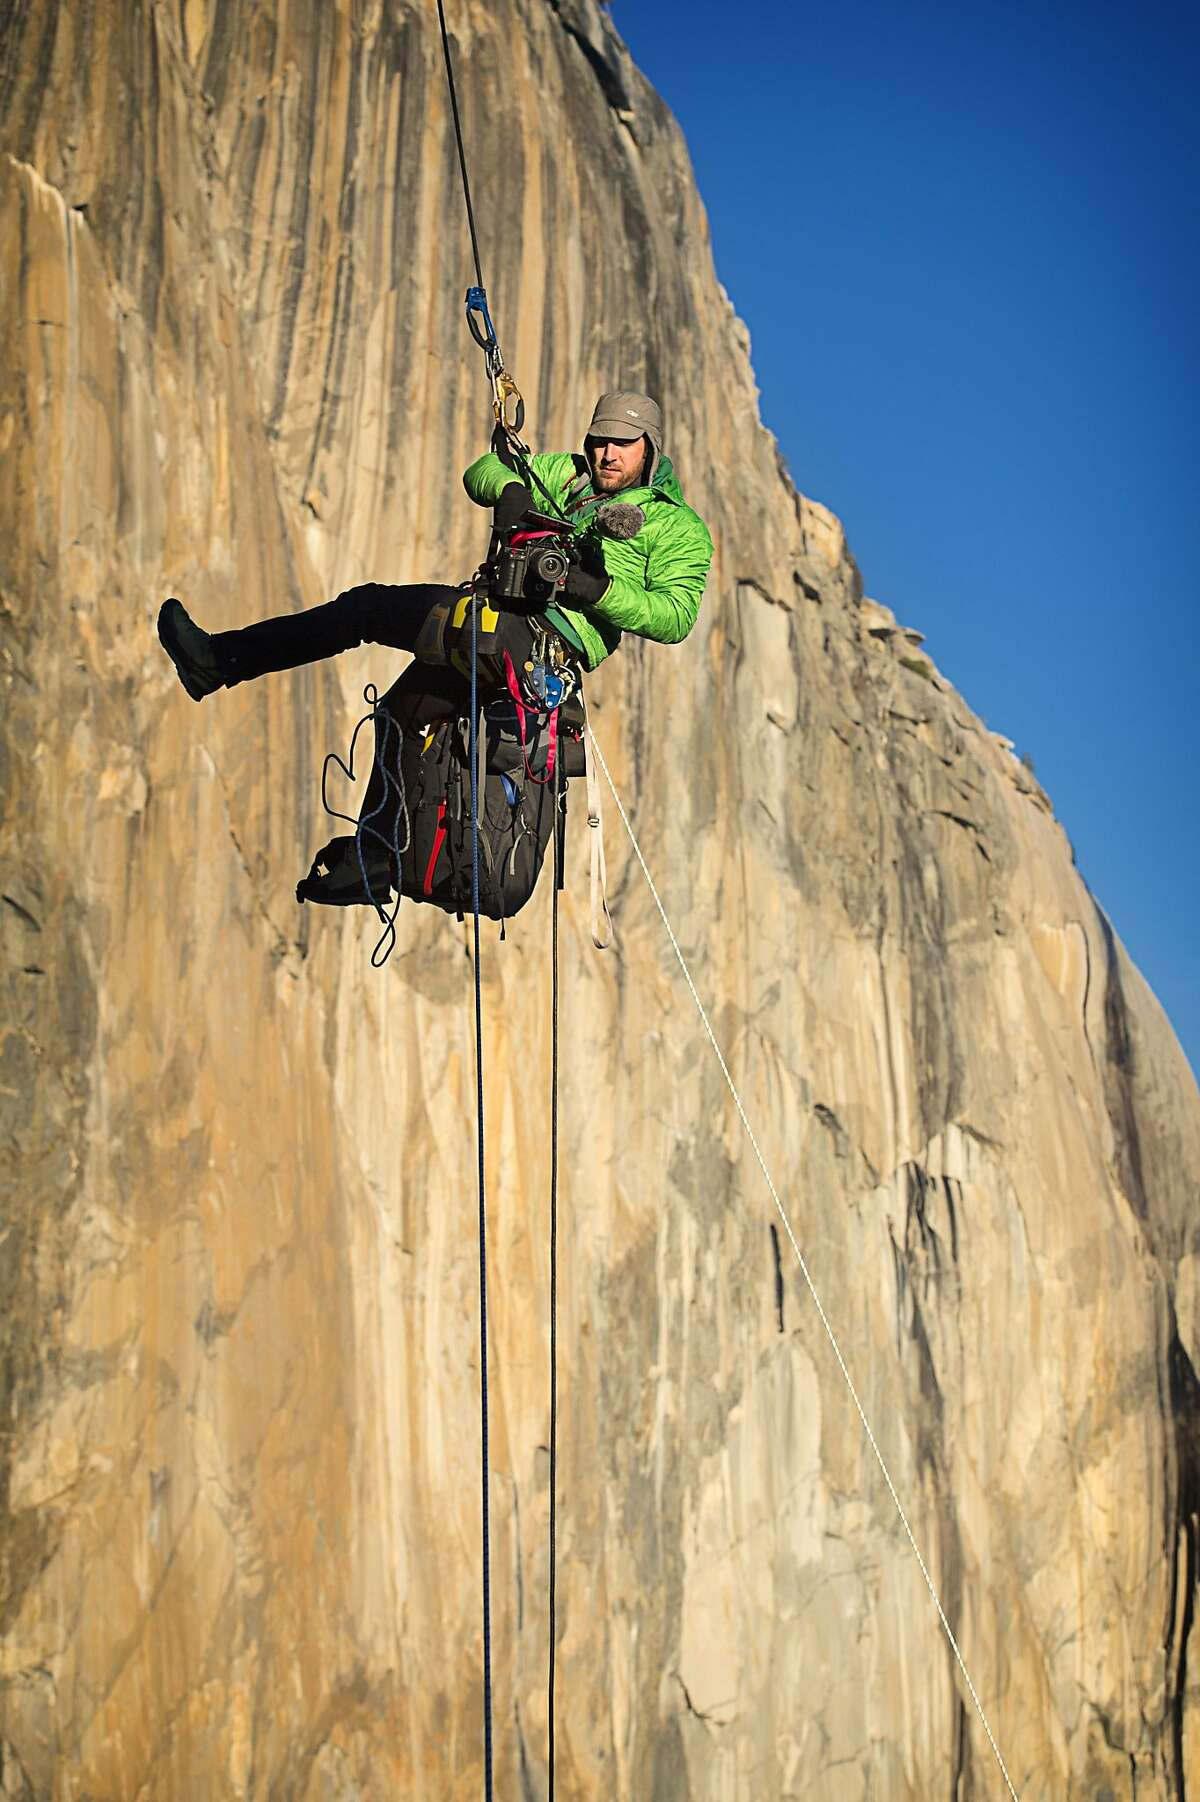 Tommy Caldwell hangs suspended in mid-air while using a video camera to document his and climbing partner Kevin Jorgenson's ascent of the Dawn Wall of El Capitan in Yosemite National Park, California, on Saturday, January 3, 2015.